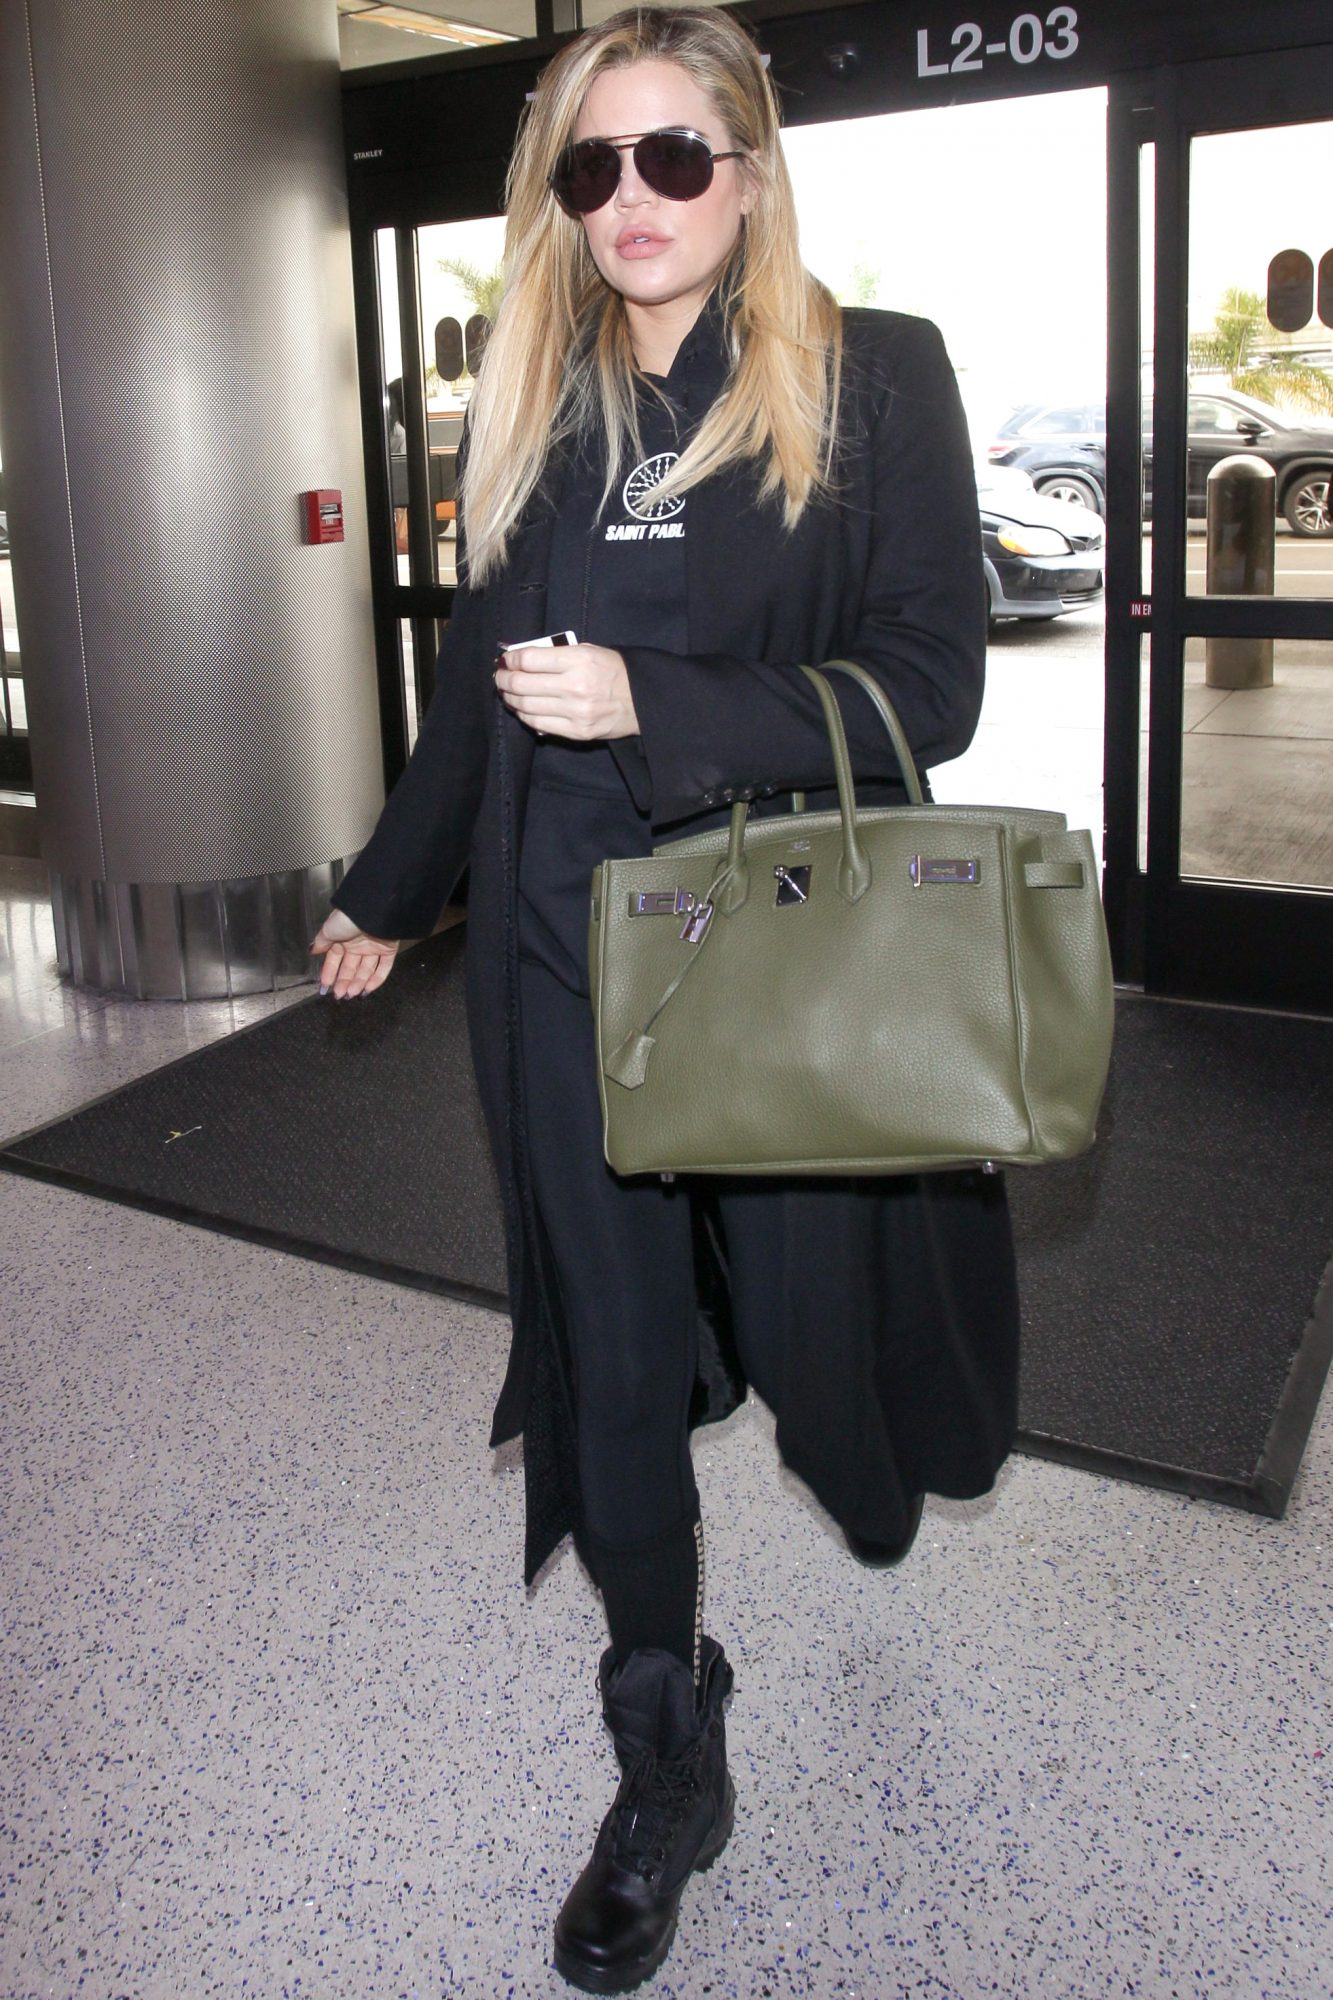 In flat black boots with a pop-of-color bag